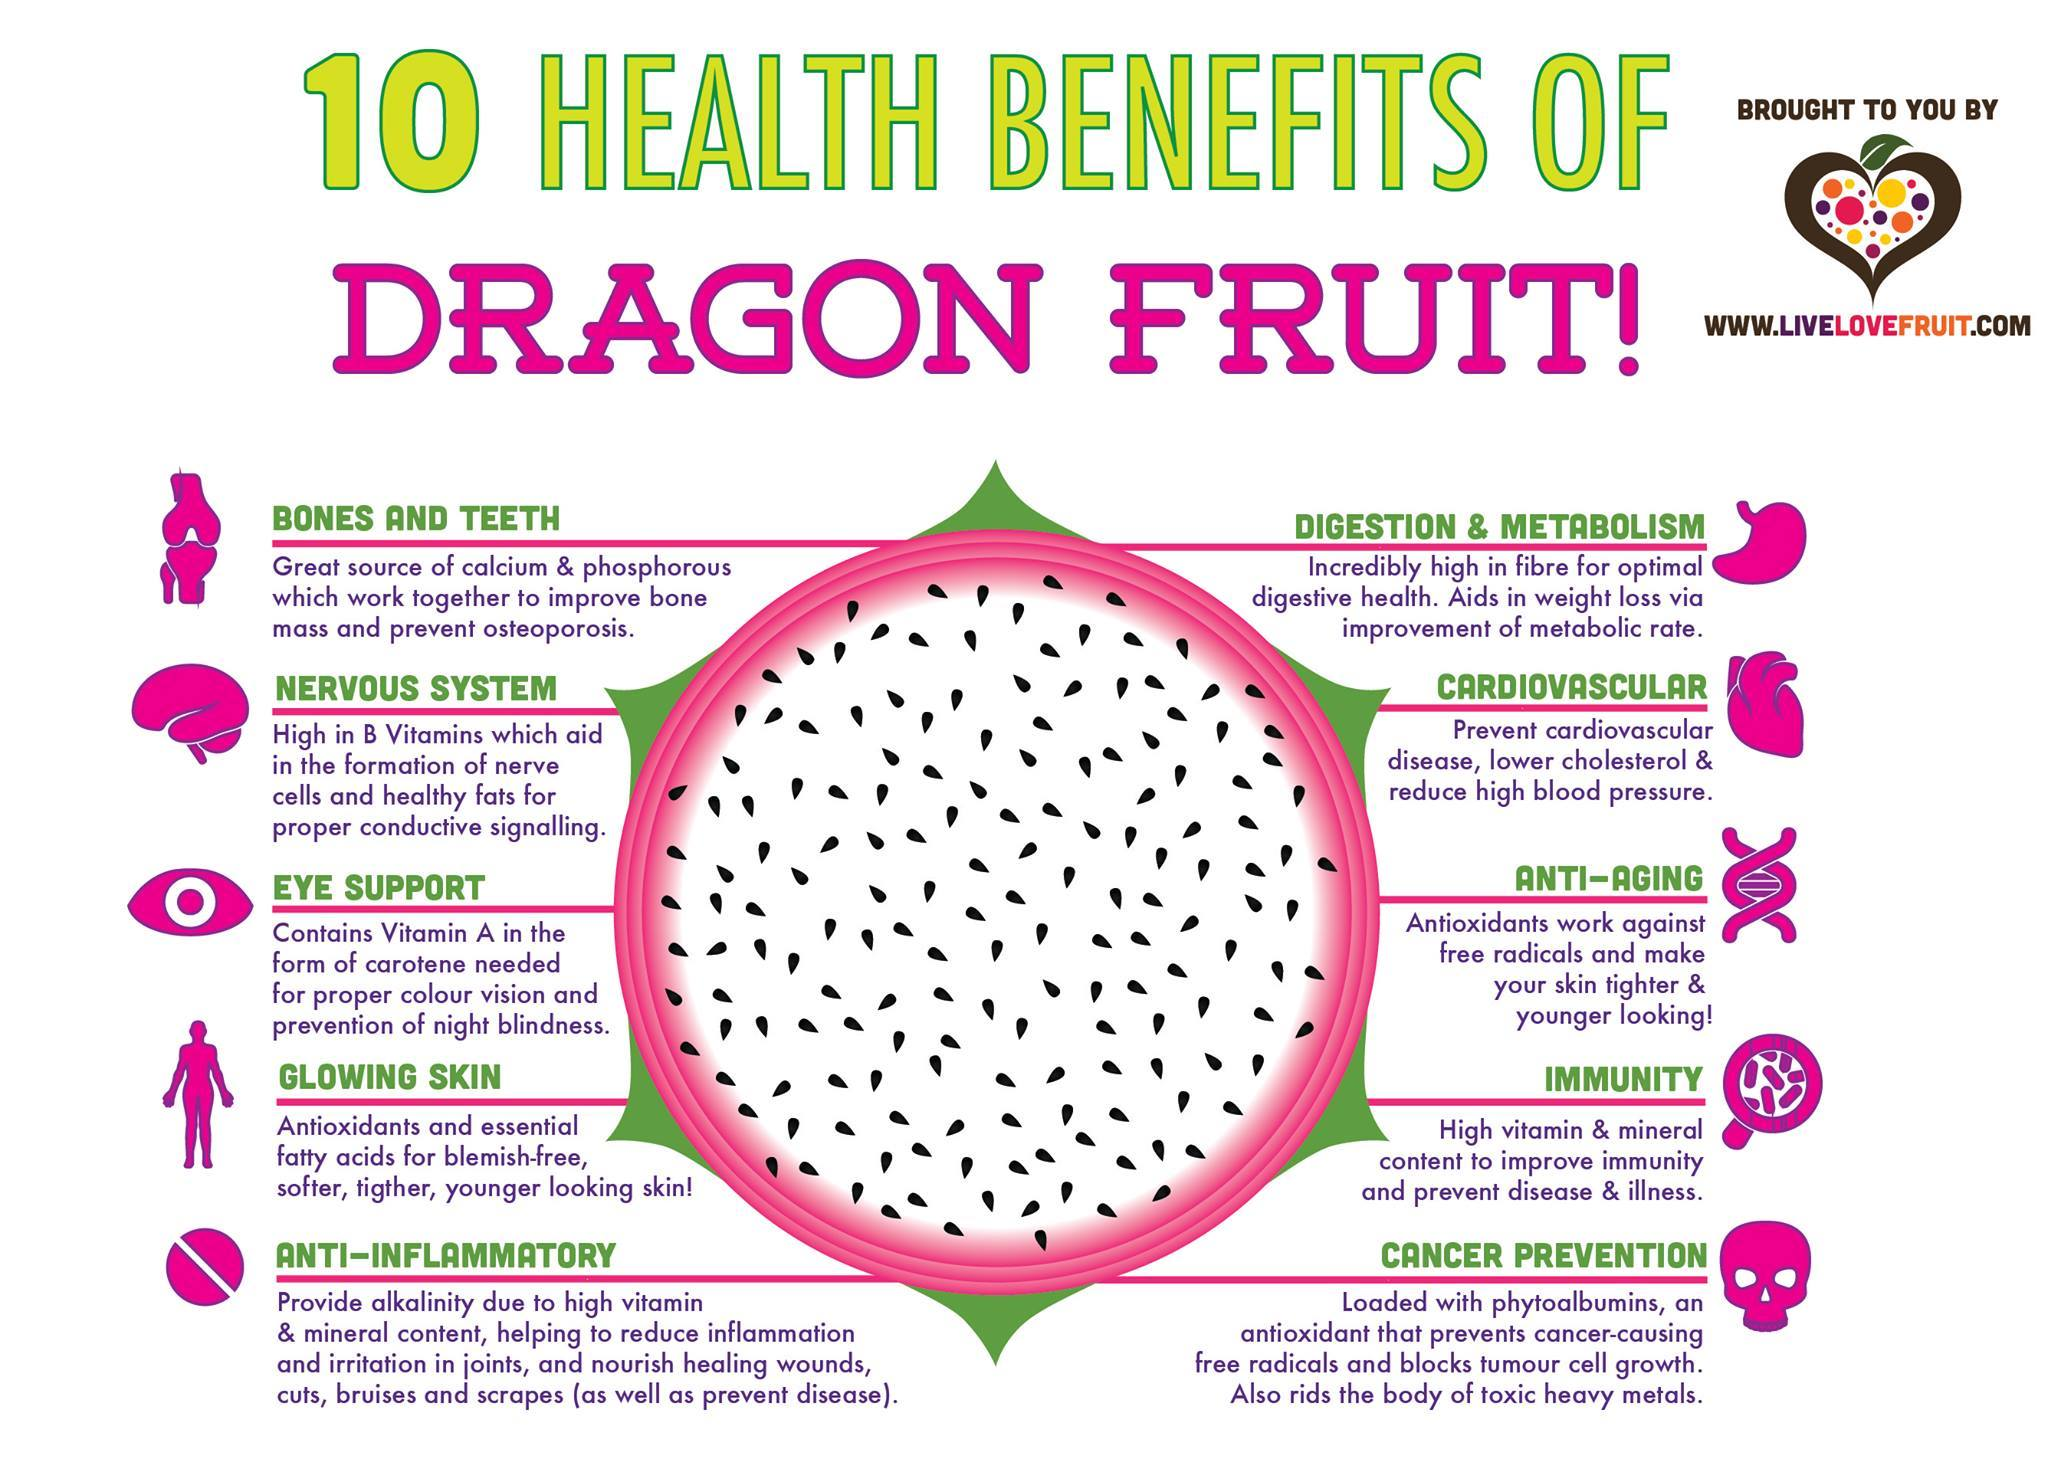 Here Are 10 Ways In Which Dragon Fruit Can Start Improving Your Health Today